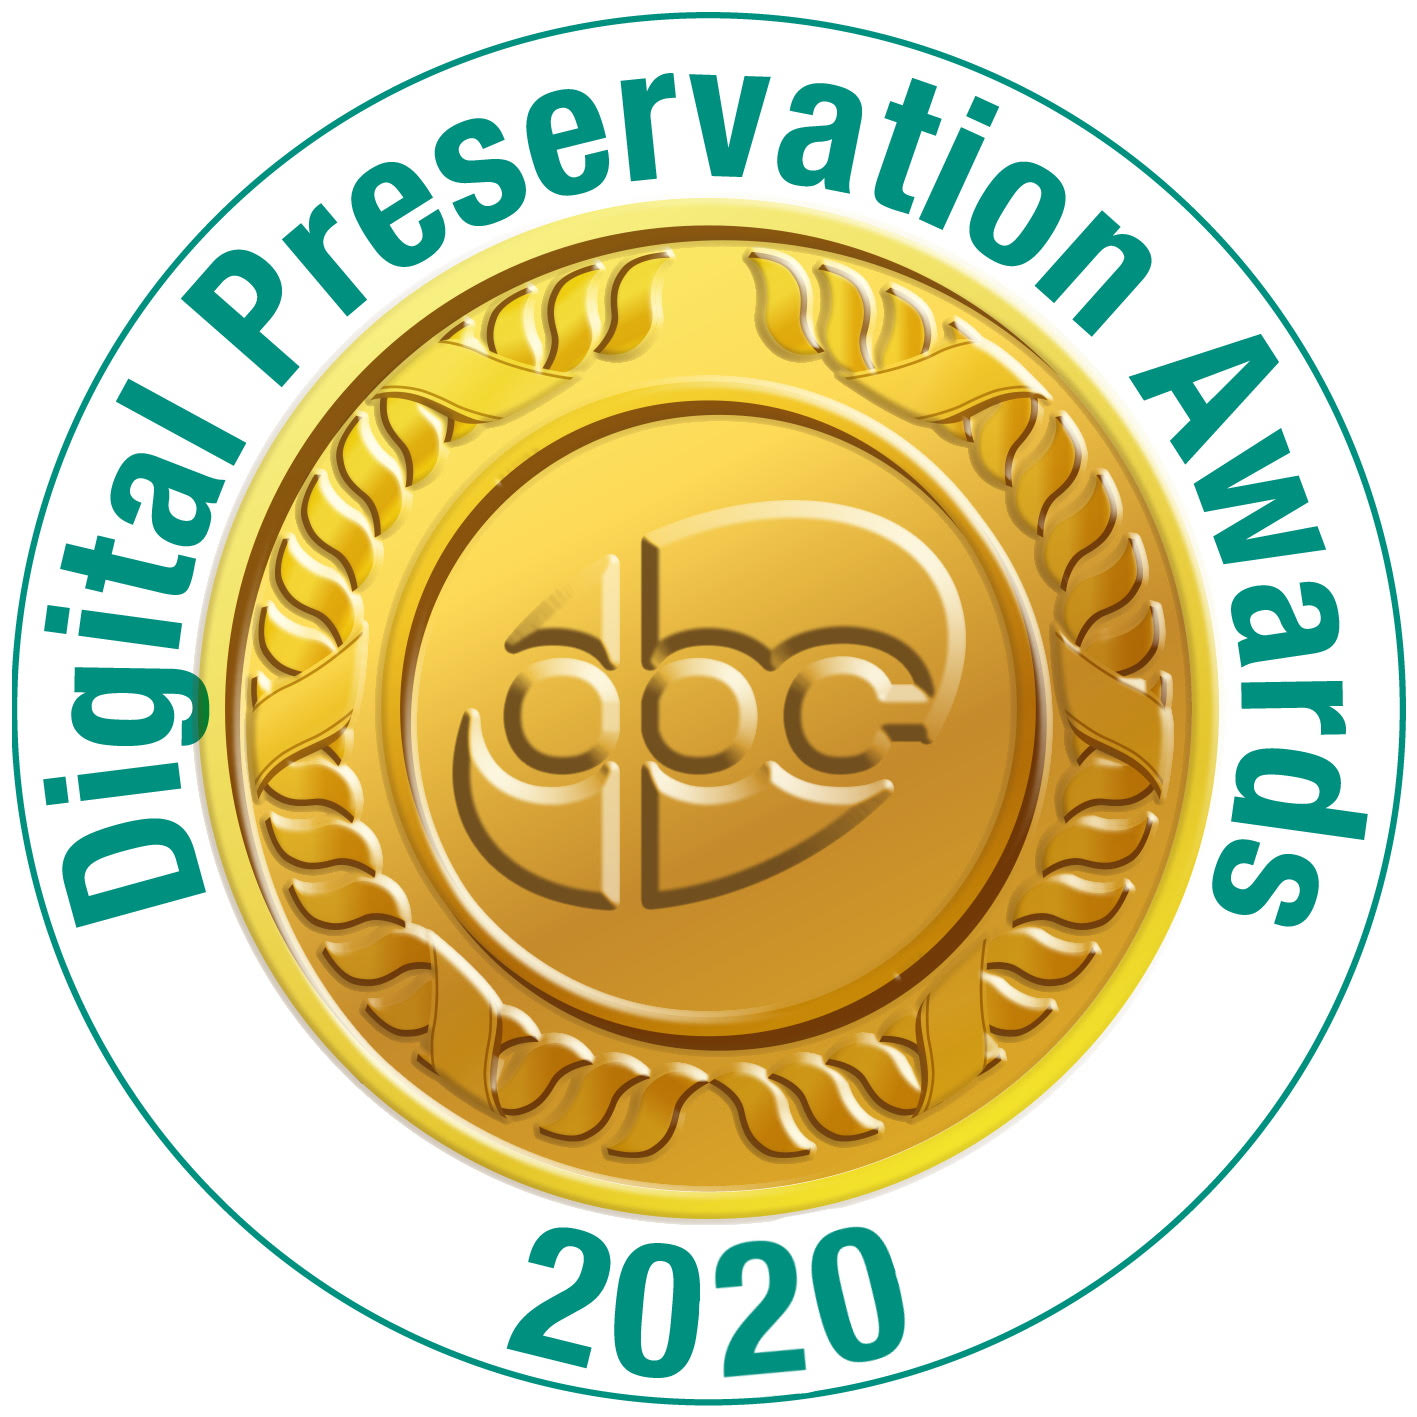 A gold DPC seal with Digital Preservation Awards 2020 encircling it.